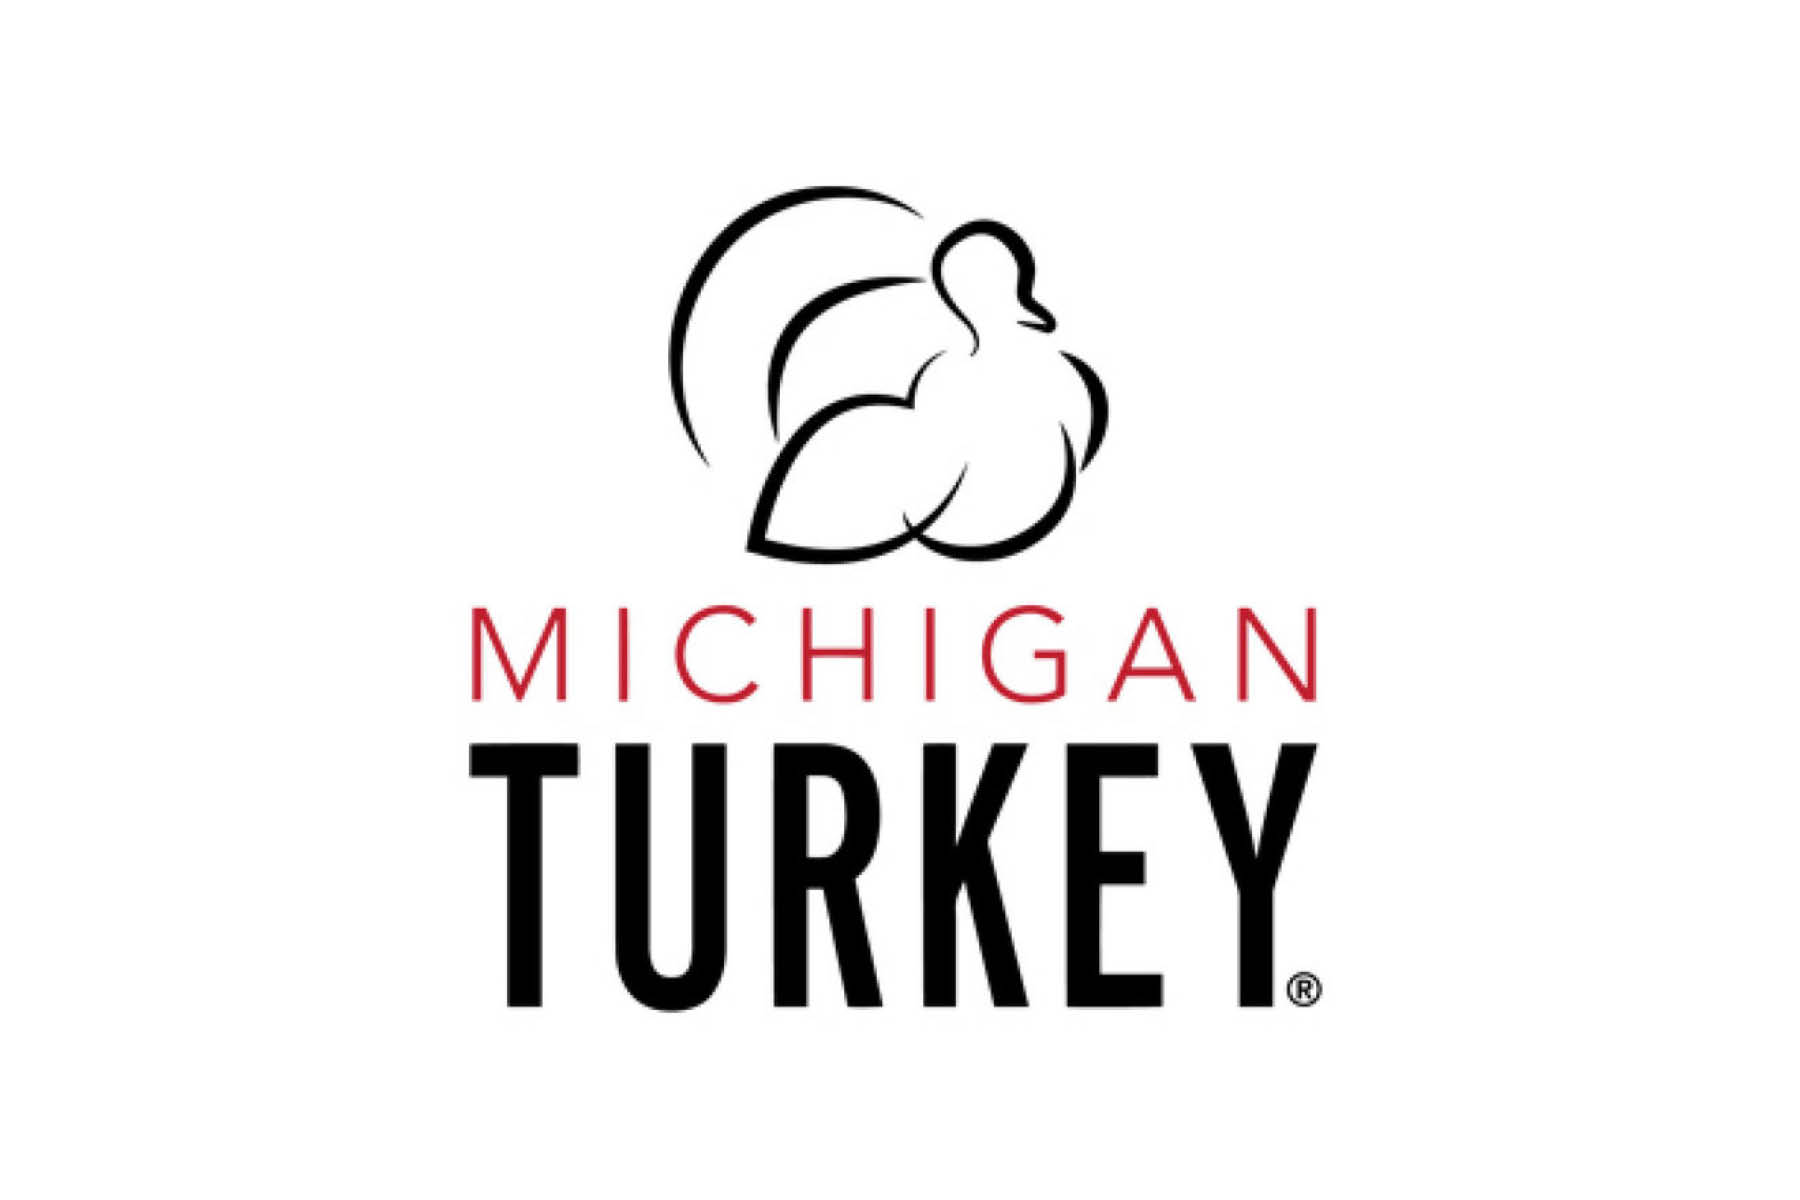 Michigan Turkey.jpg